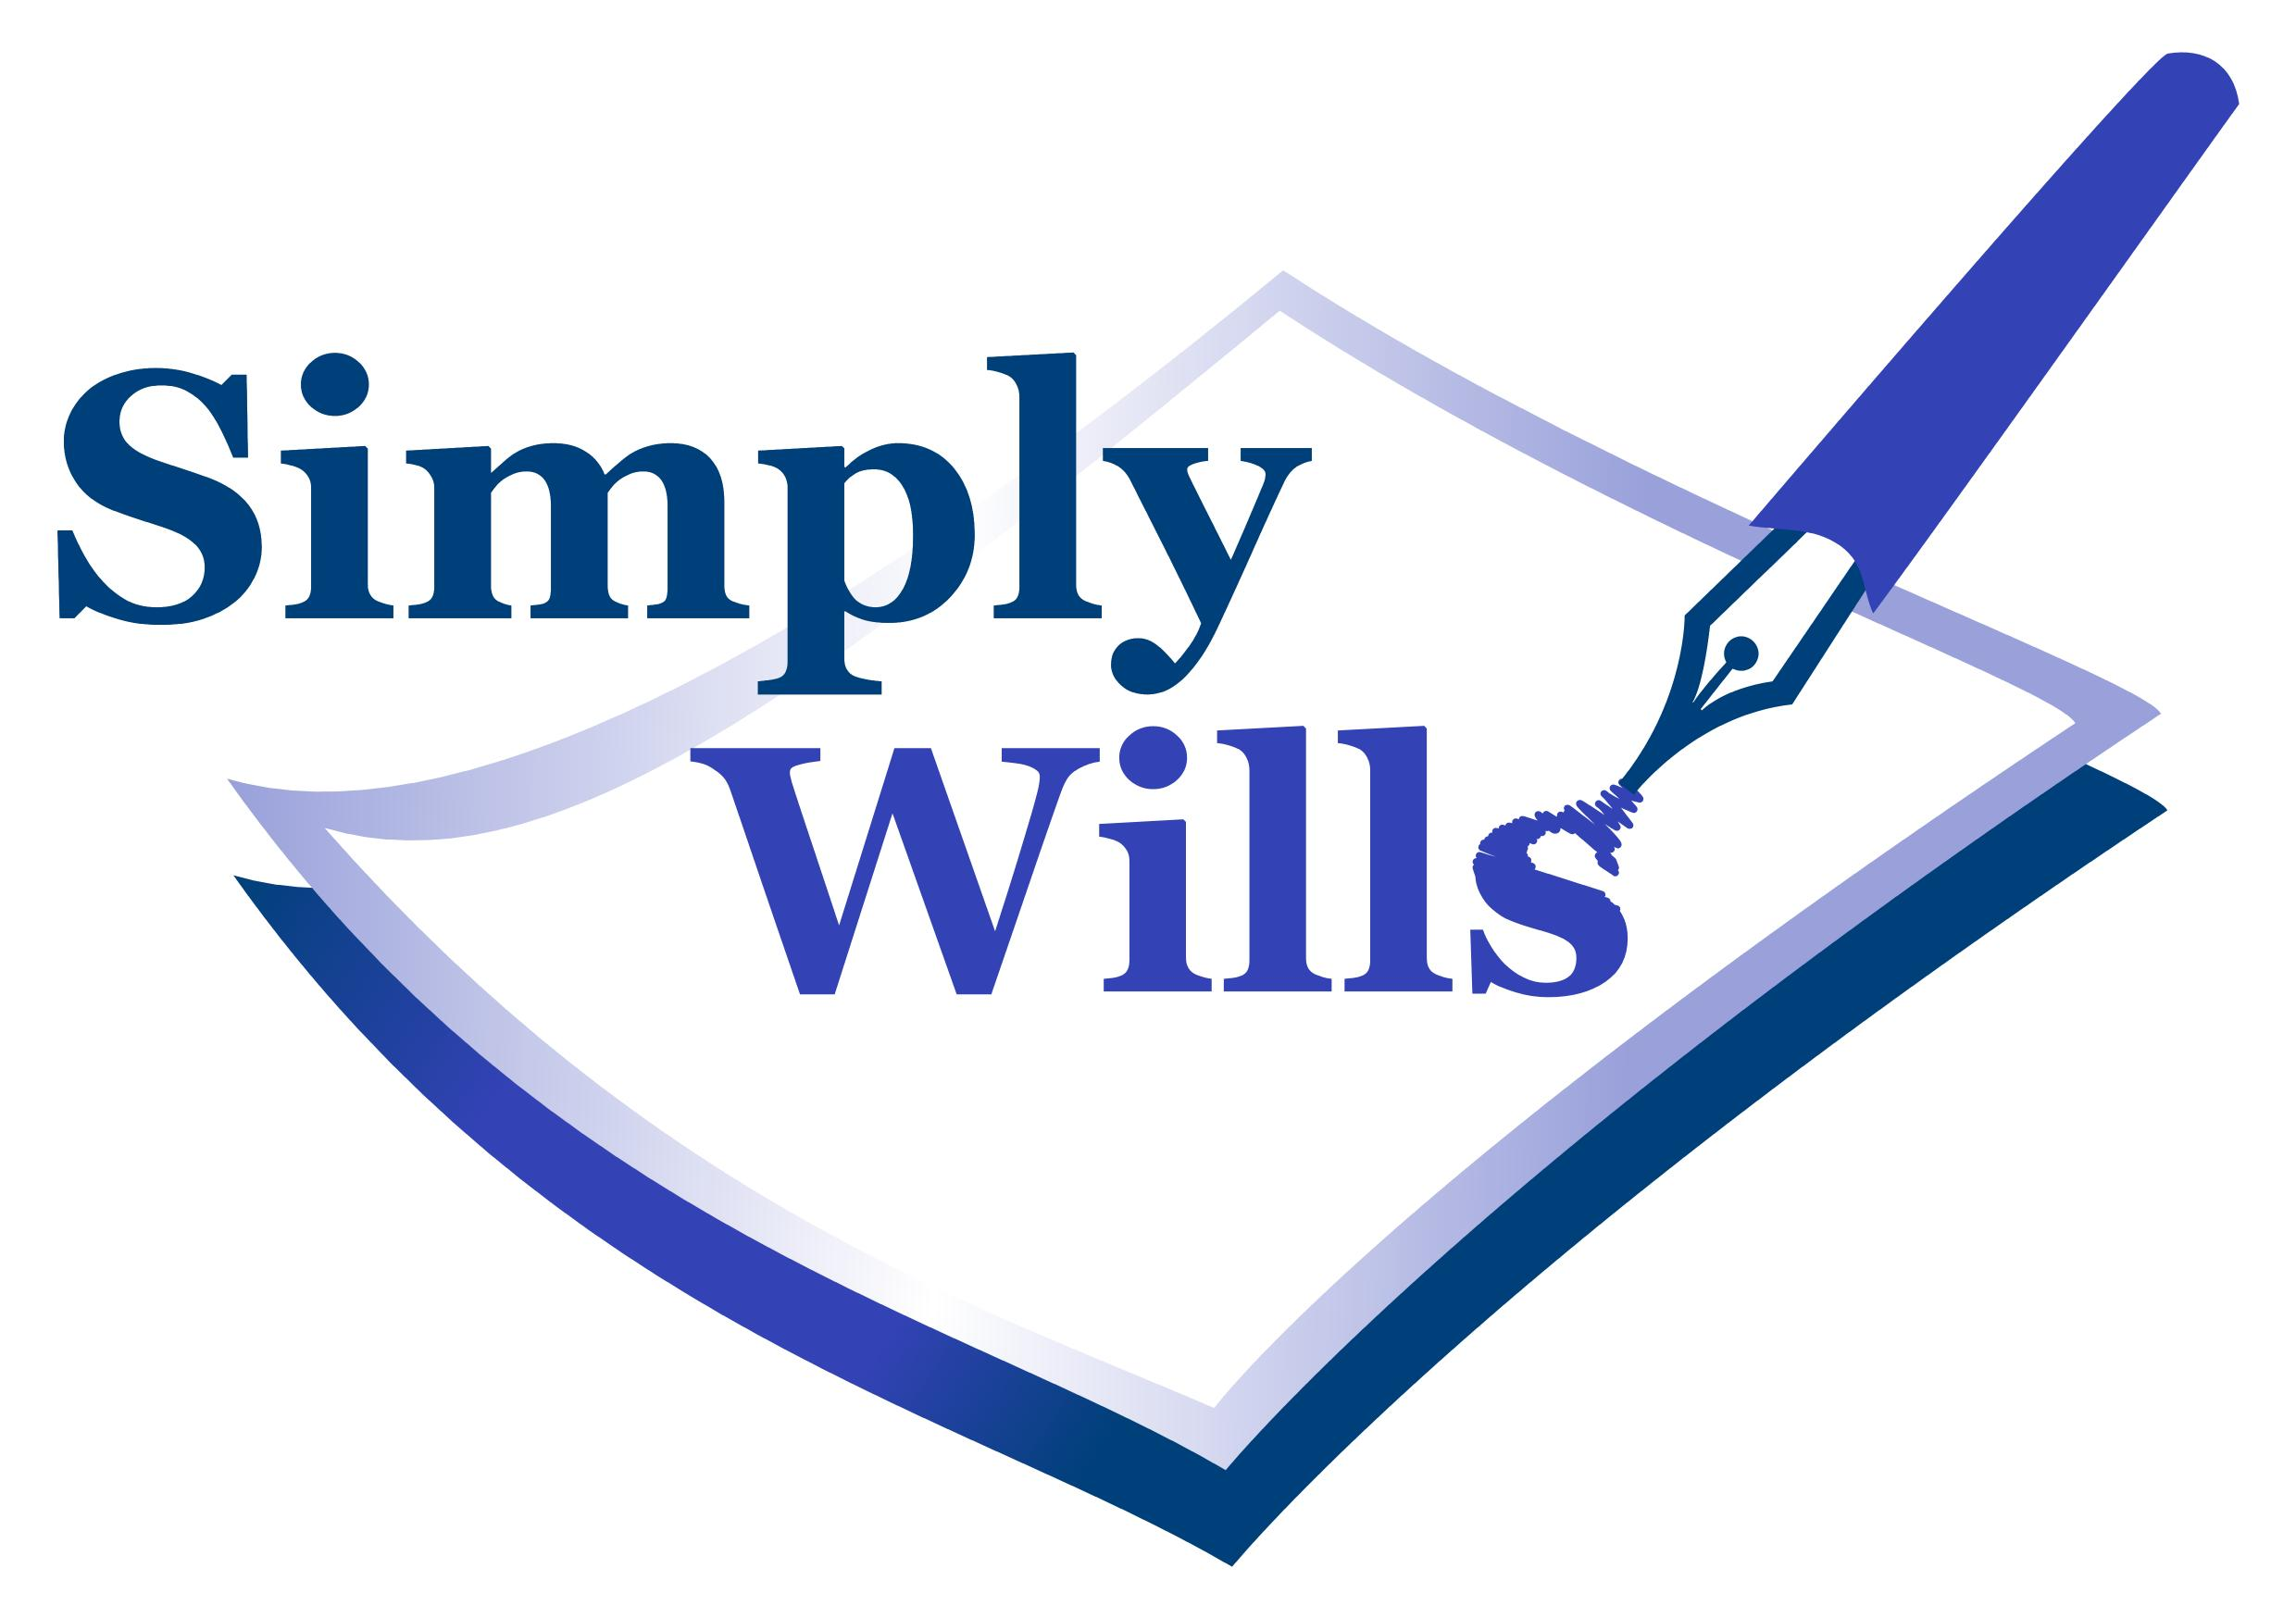 2. WillS WRITING VOUCHER  - Be rewarded with a Wills Writing Voucher from Simply Wills (worth $50)